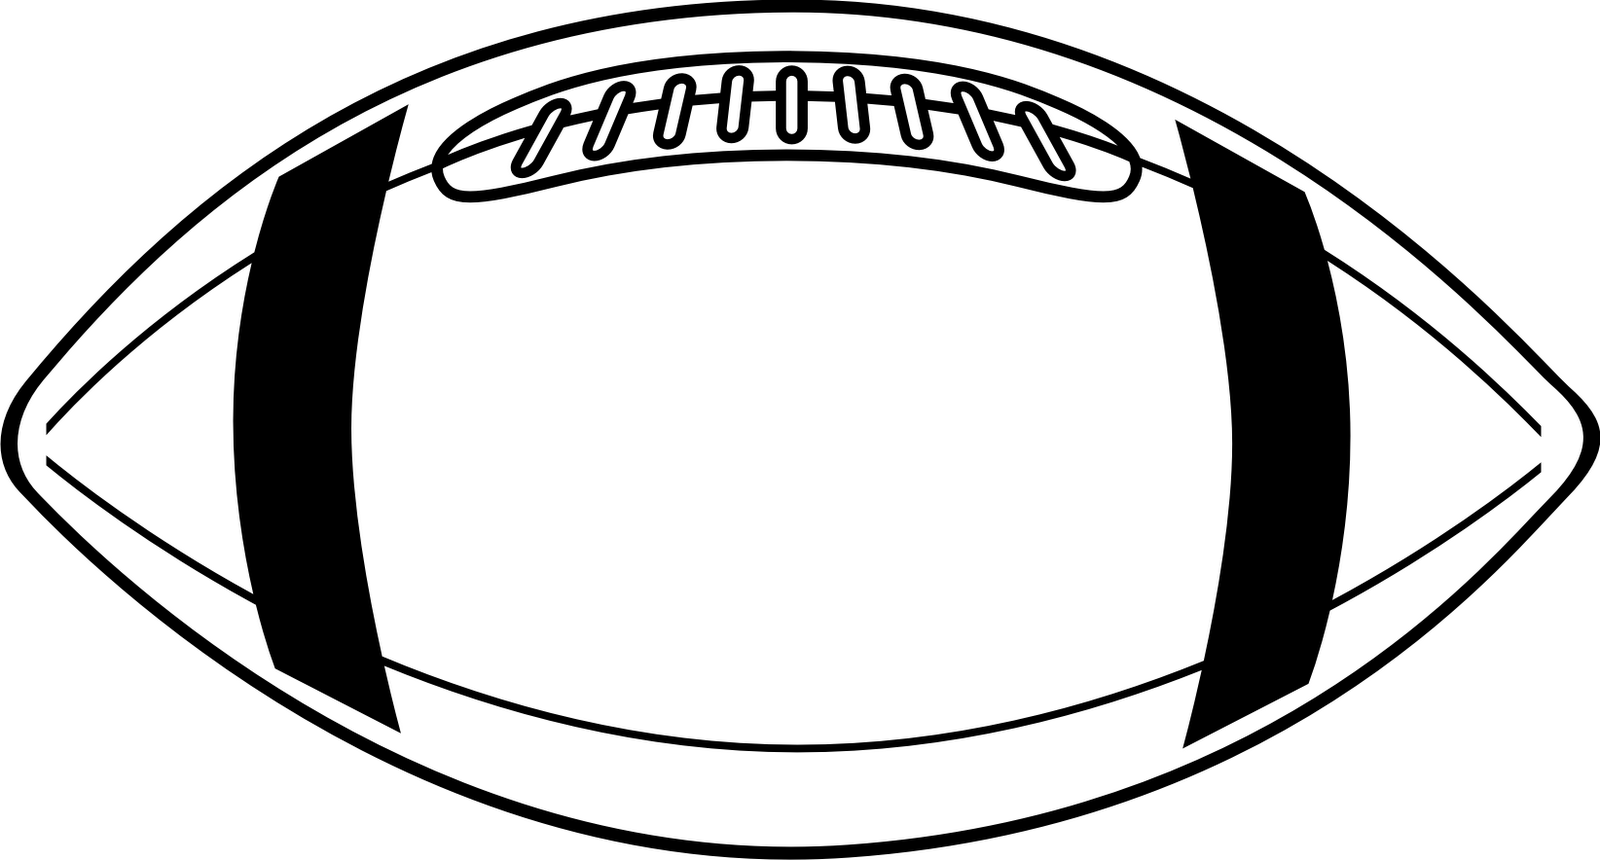 Sketch clipart football 9 clip clipart outline art